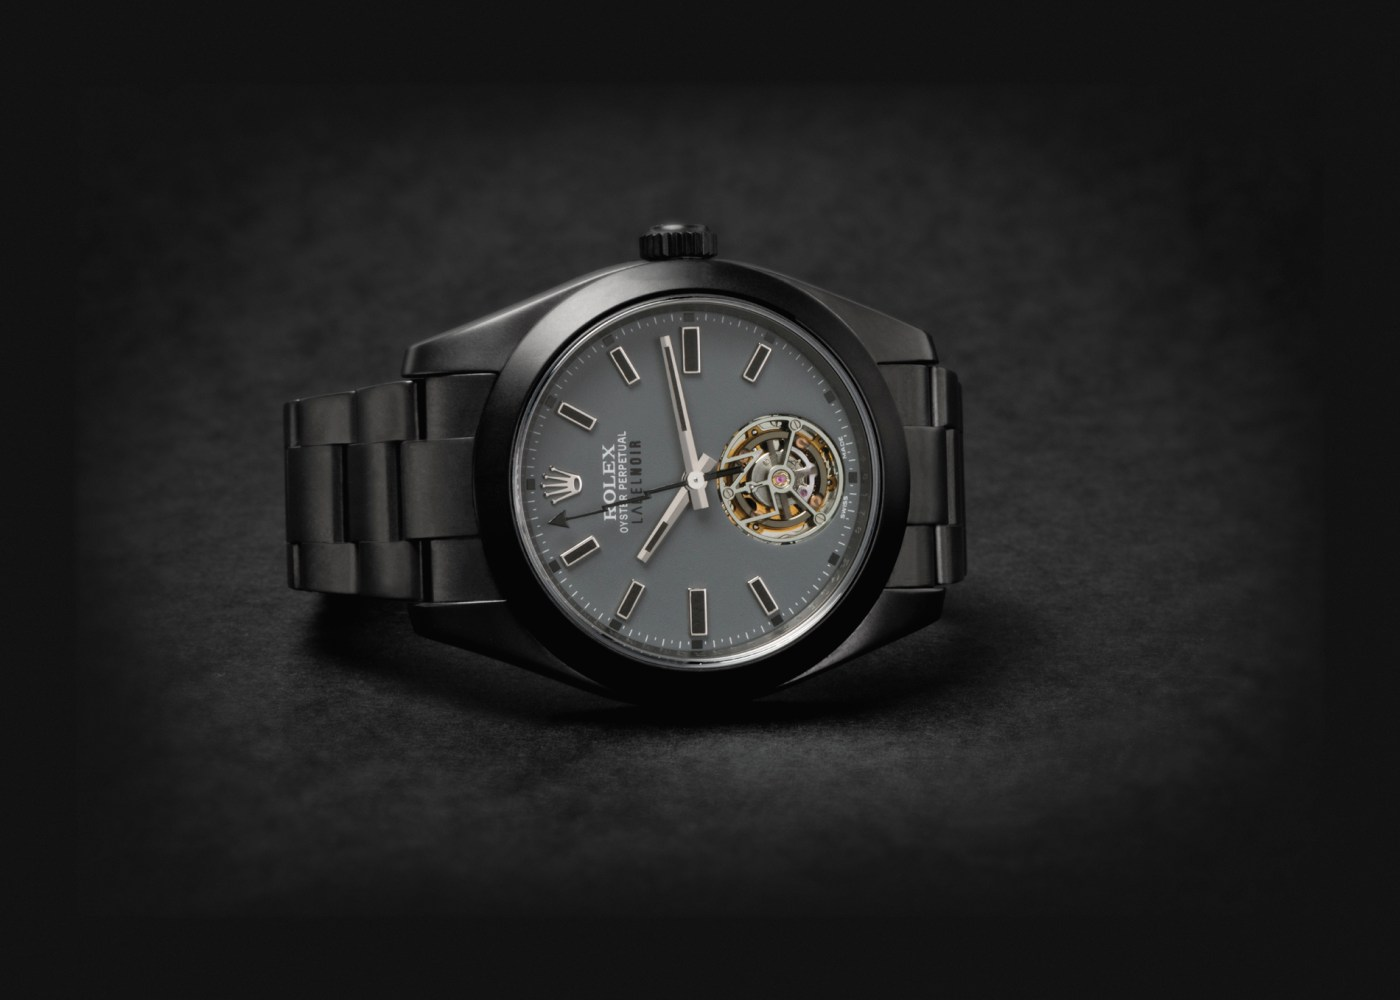 Rolex Milgauss Tourbillon by Label Noir